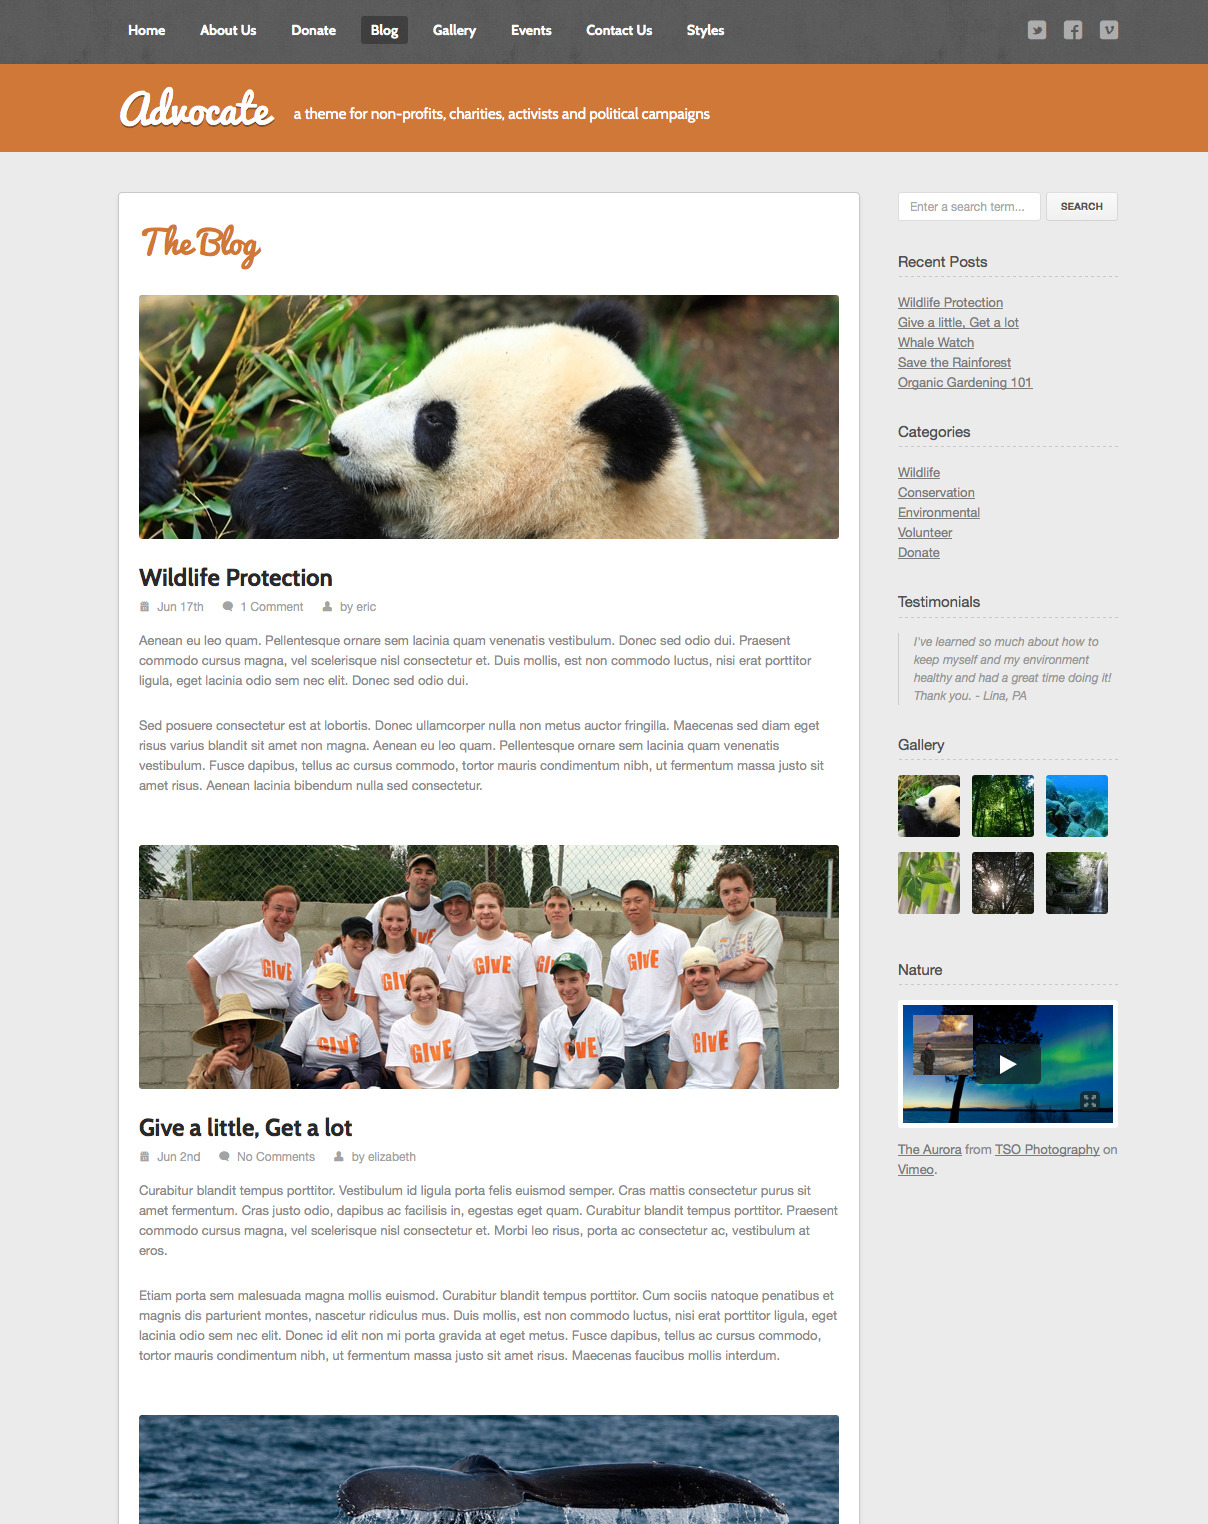 Advocate - A Nonprofit Responsive HTML Template  - Blog - The blog can be used to display images or mini-sliders along with your blog posts.